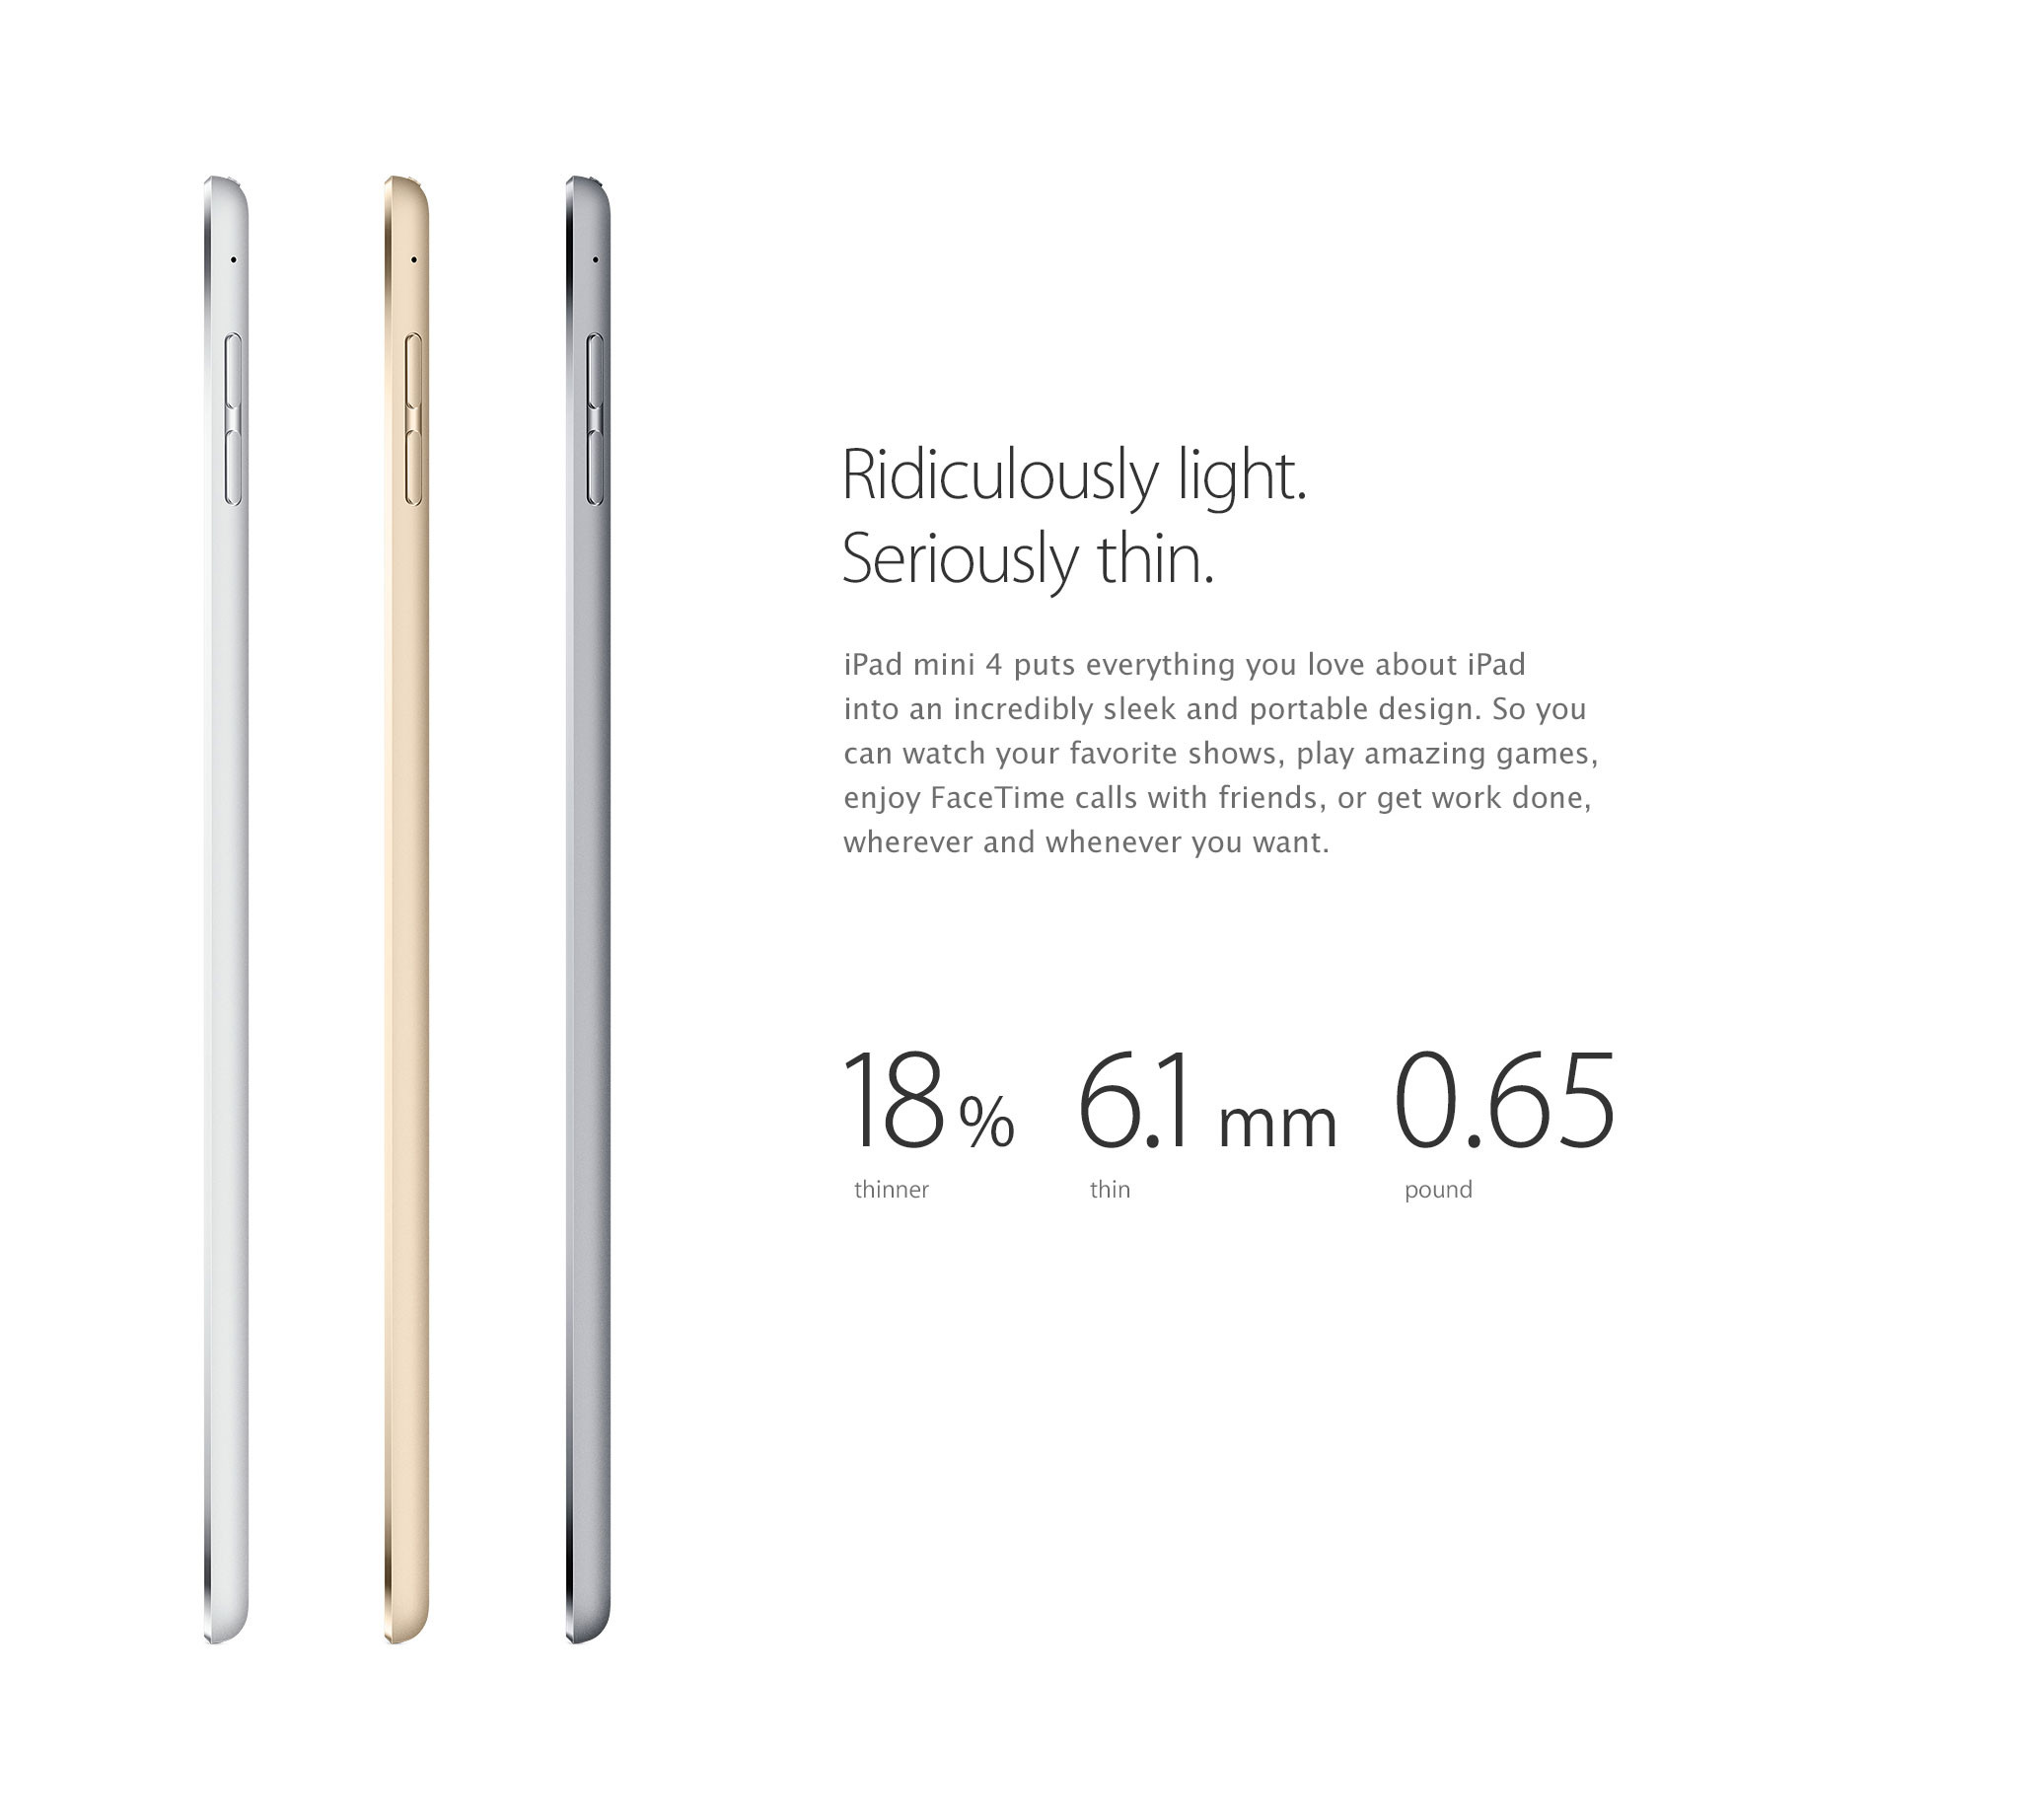 Ridiculously light. Seriously thin. iPad mini 4 puts everything you love about iPad into an incredibly sleek and portable design. So you can watch your favorite shows, play amazing games, enjoy FaceTime calls with friends, or get work done, wherever and whenever you want. 18% thinner, 6.1 mm thin, 0.65 pound.